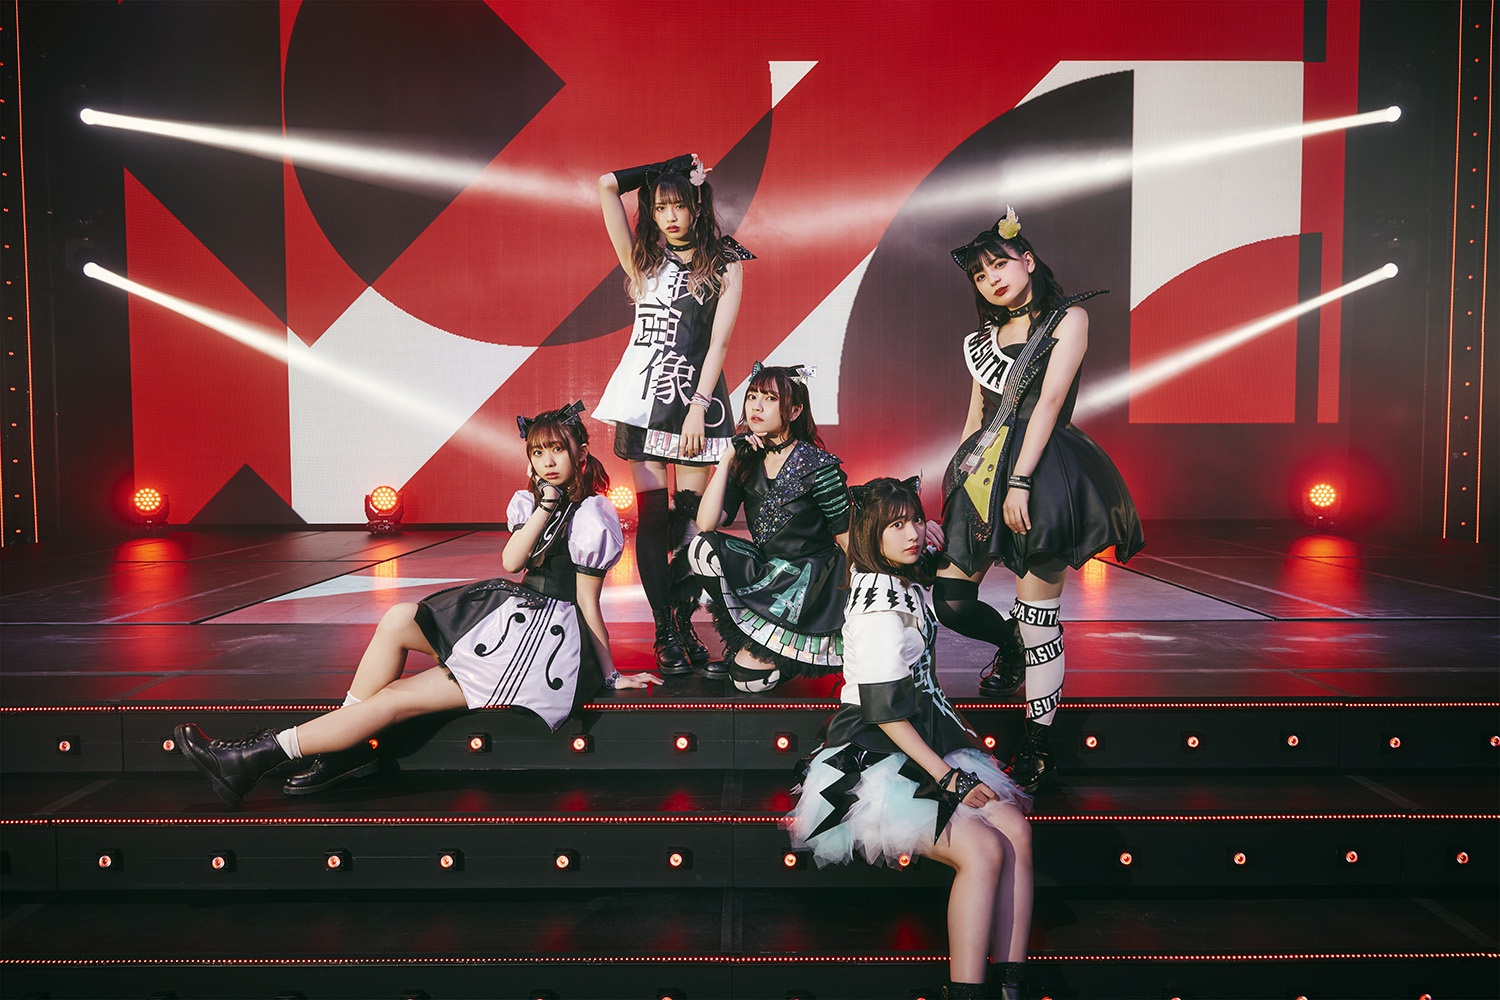 RMMS-Wasuta-Whats-Standard-group-1